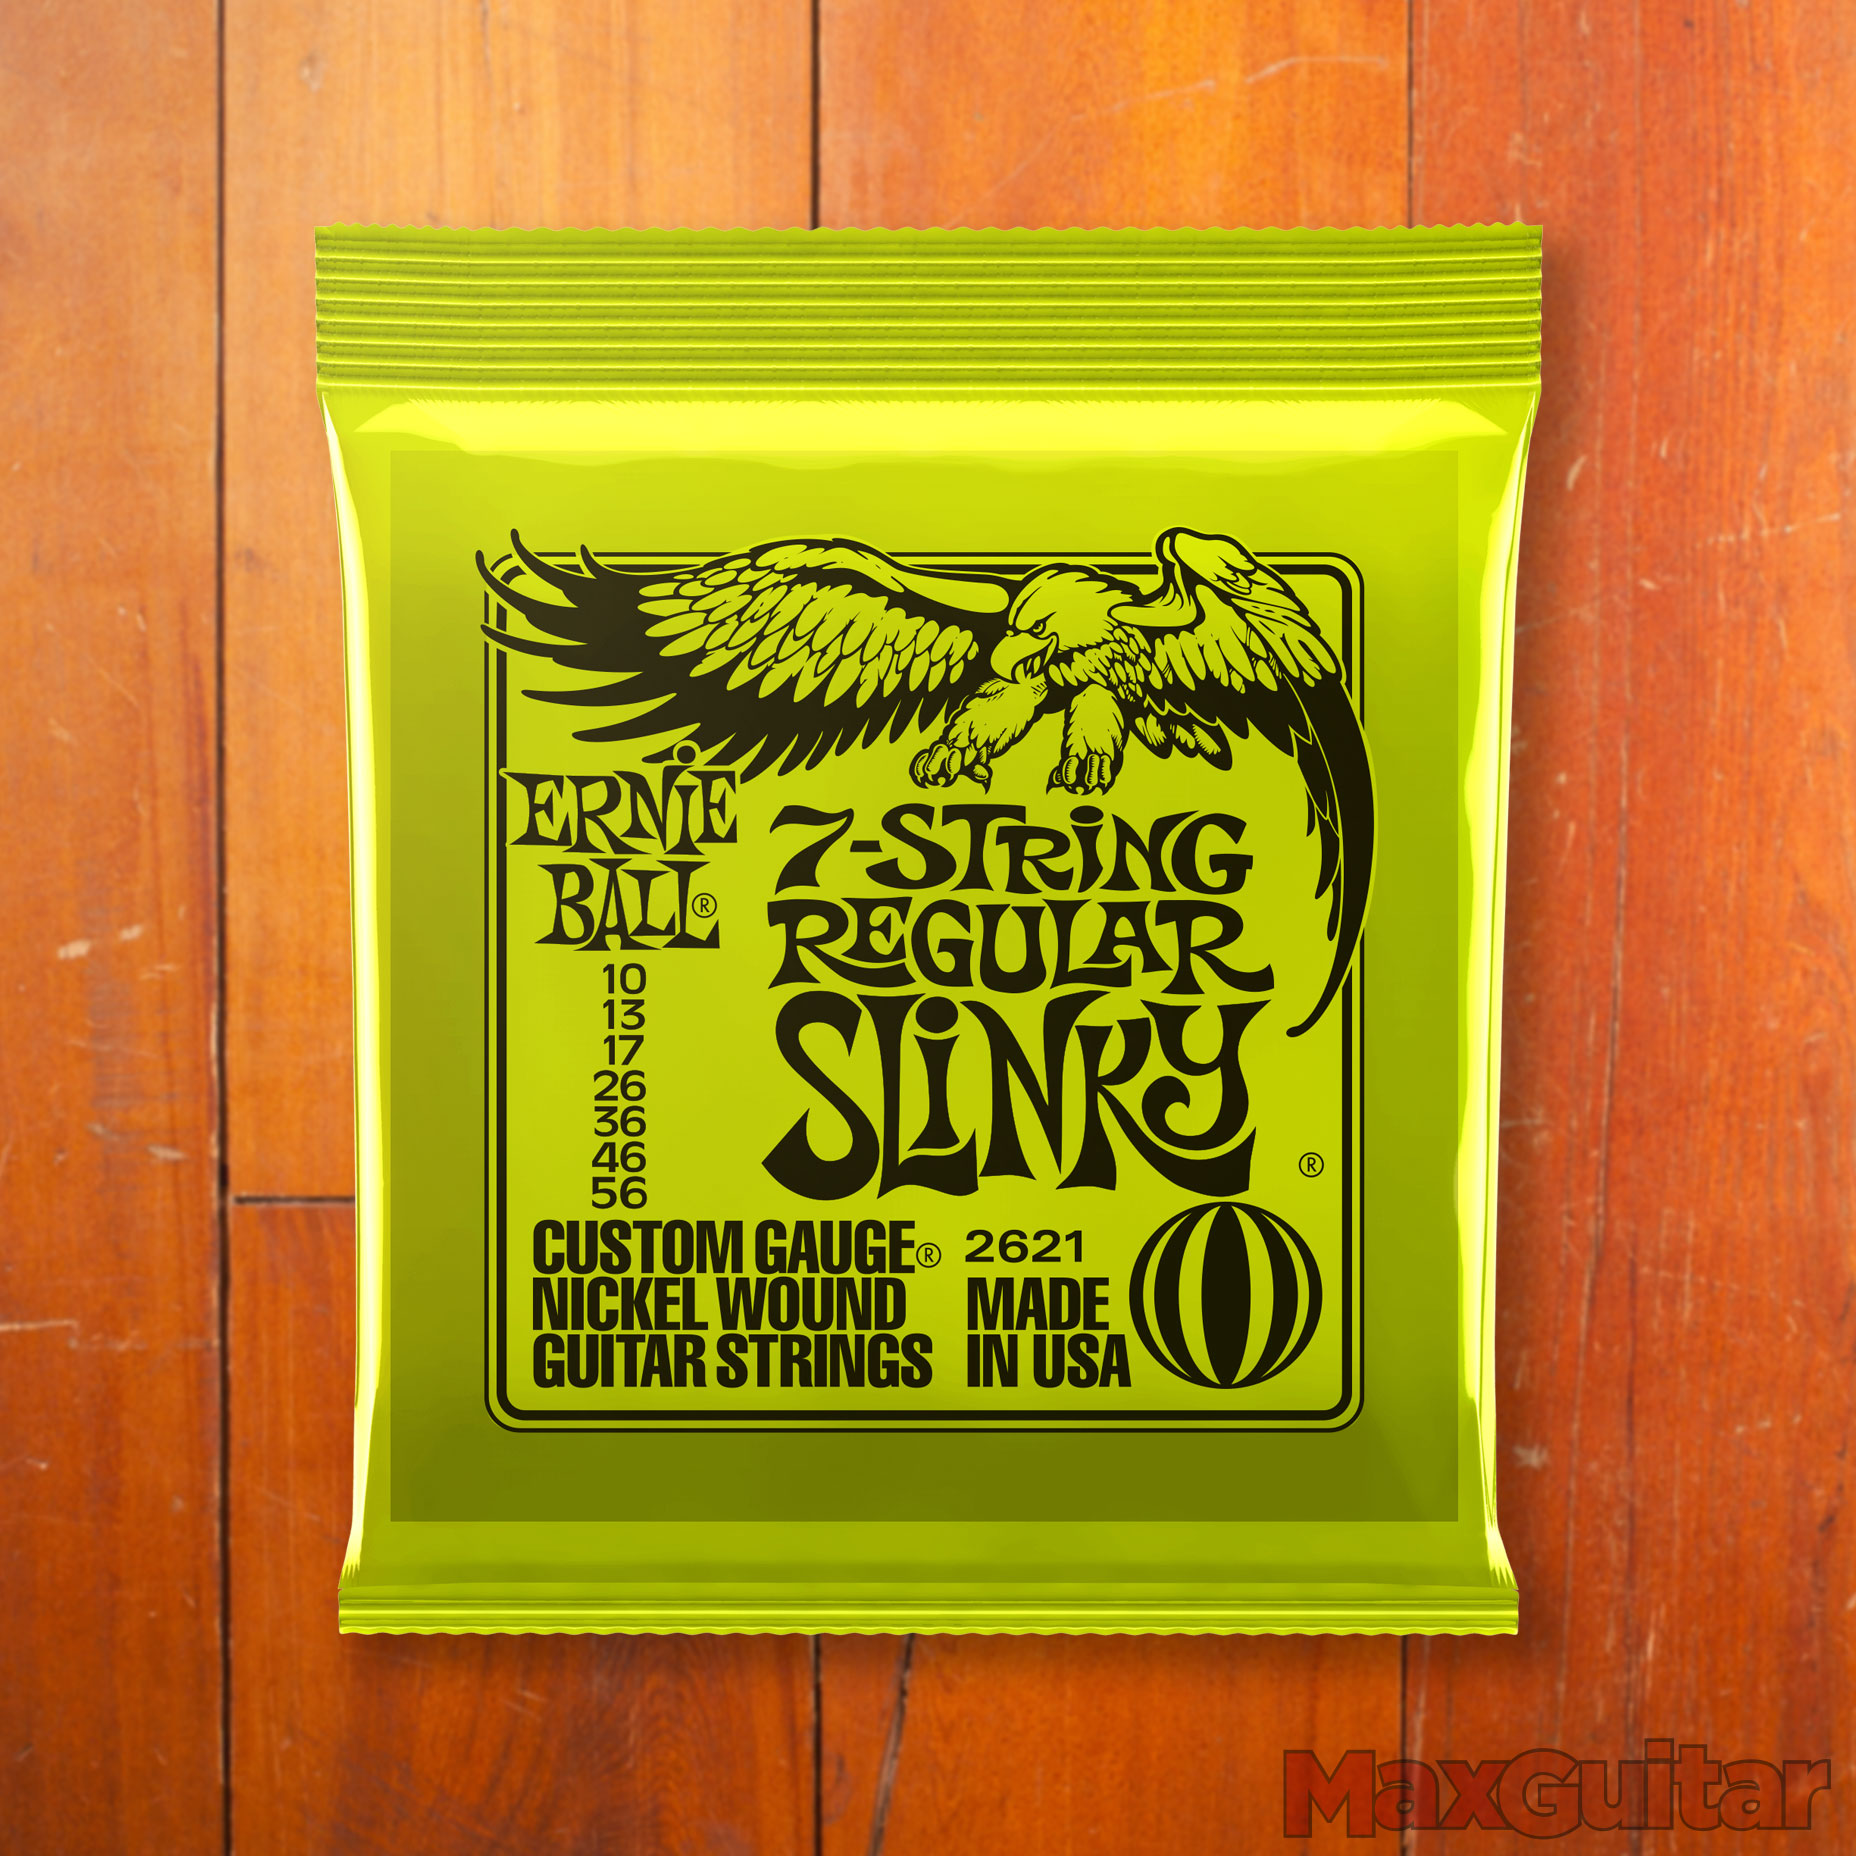 Ernie Ball 2621 7-String Regular Slinky snarenset